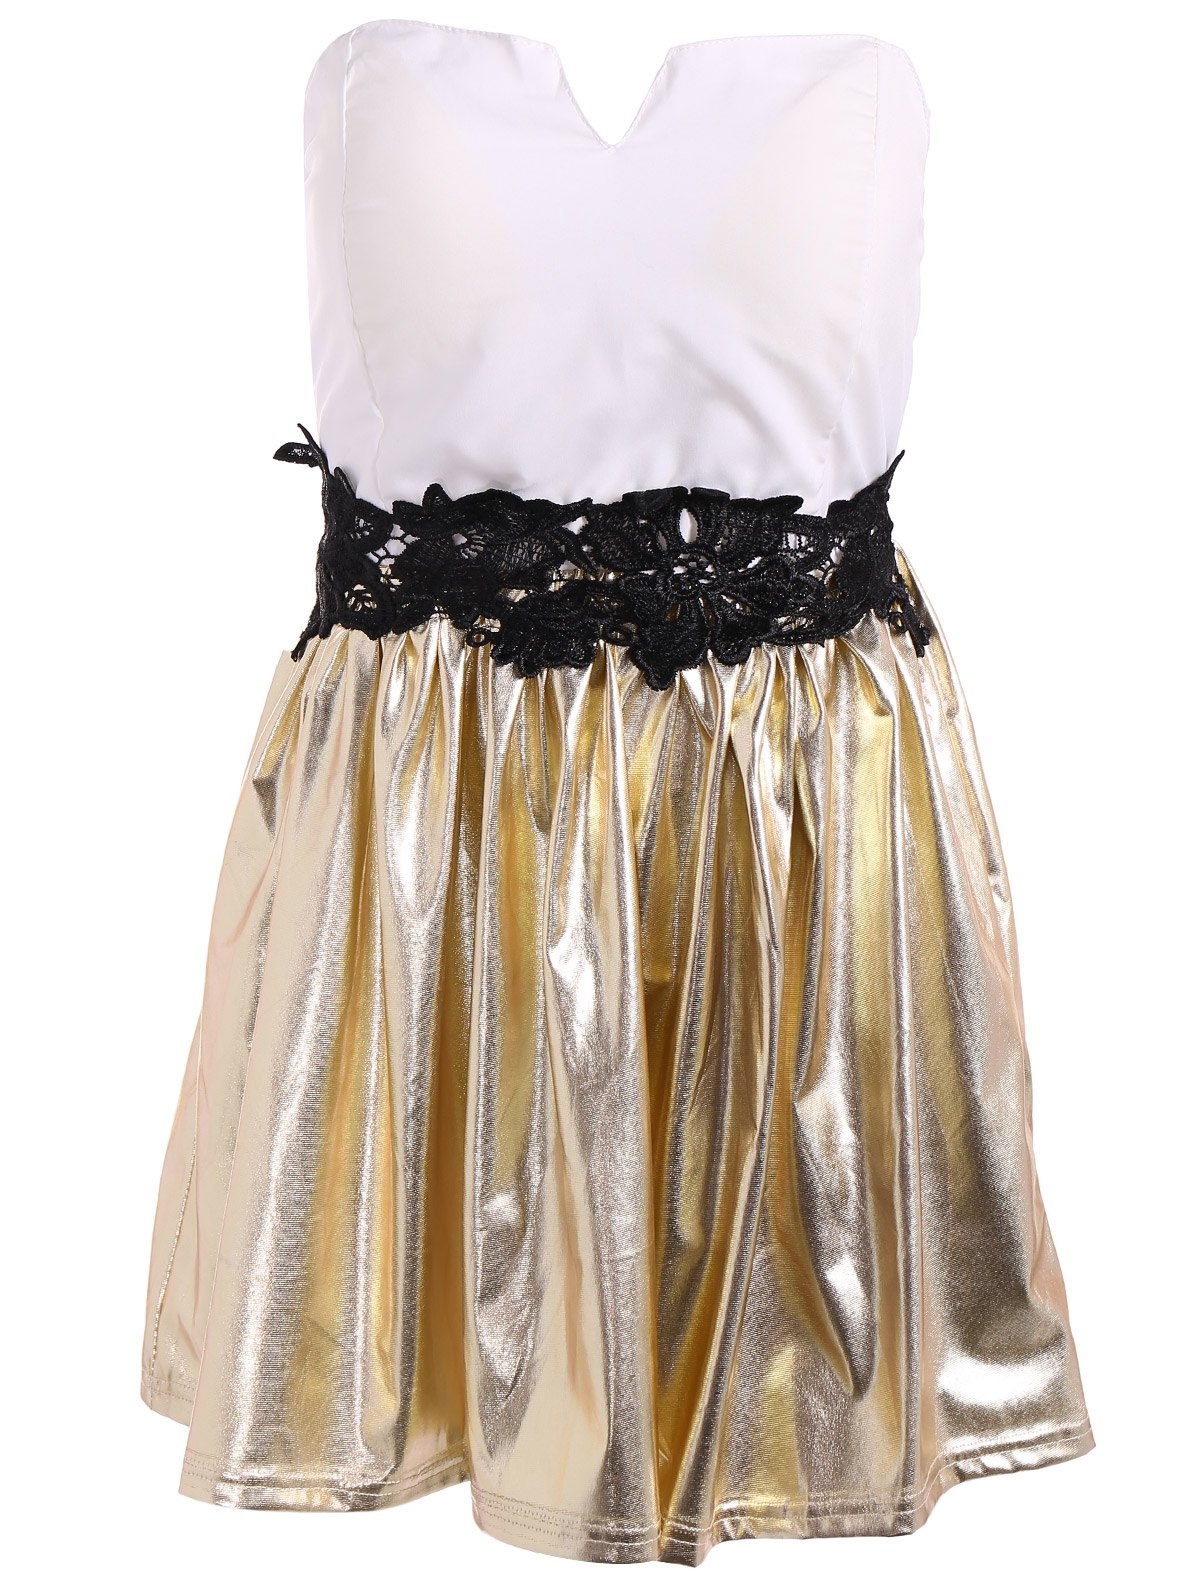 Short Strapless Patchwork Prom Dress - GOLD/WHITE XL